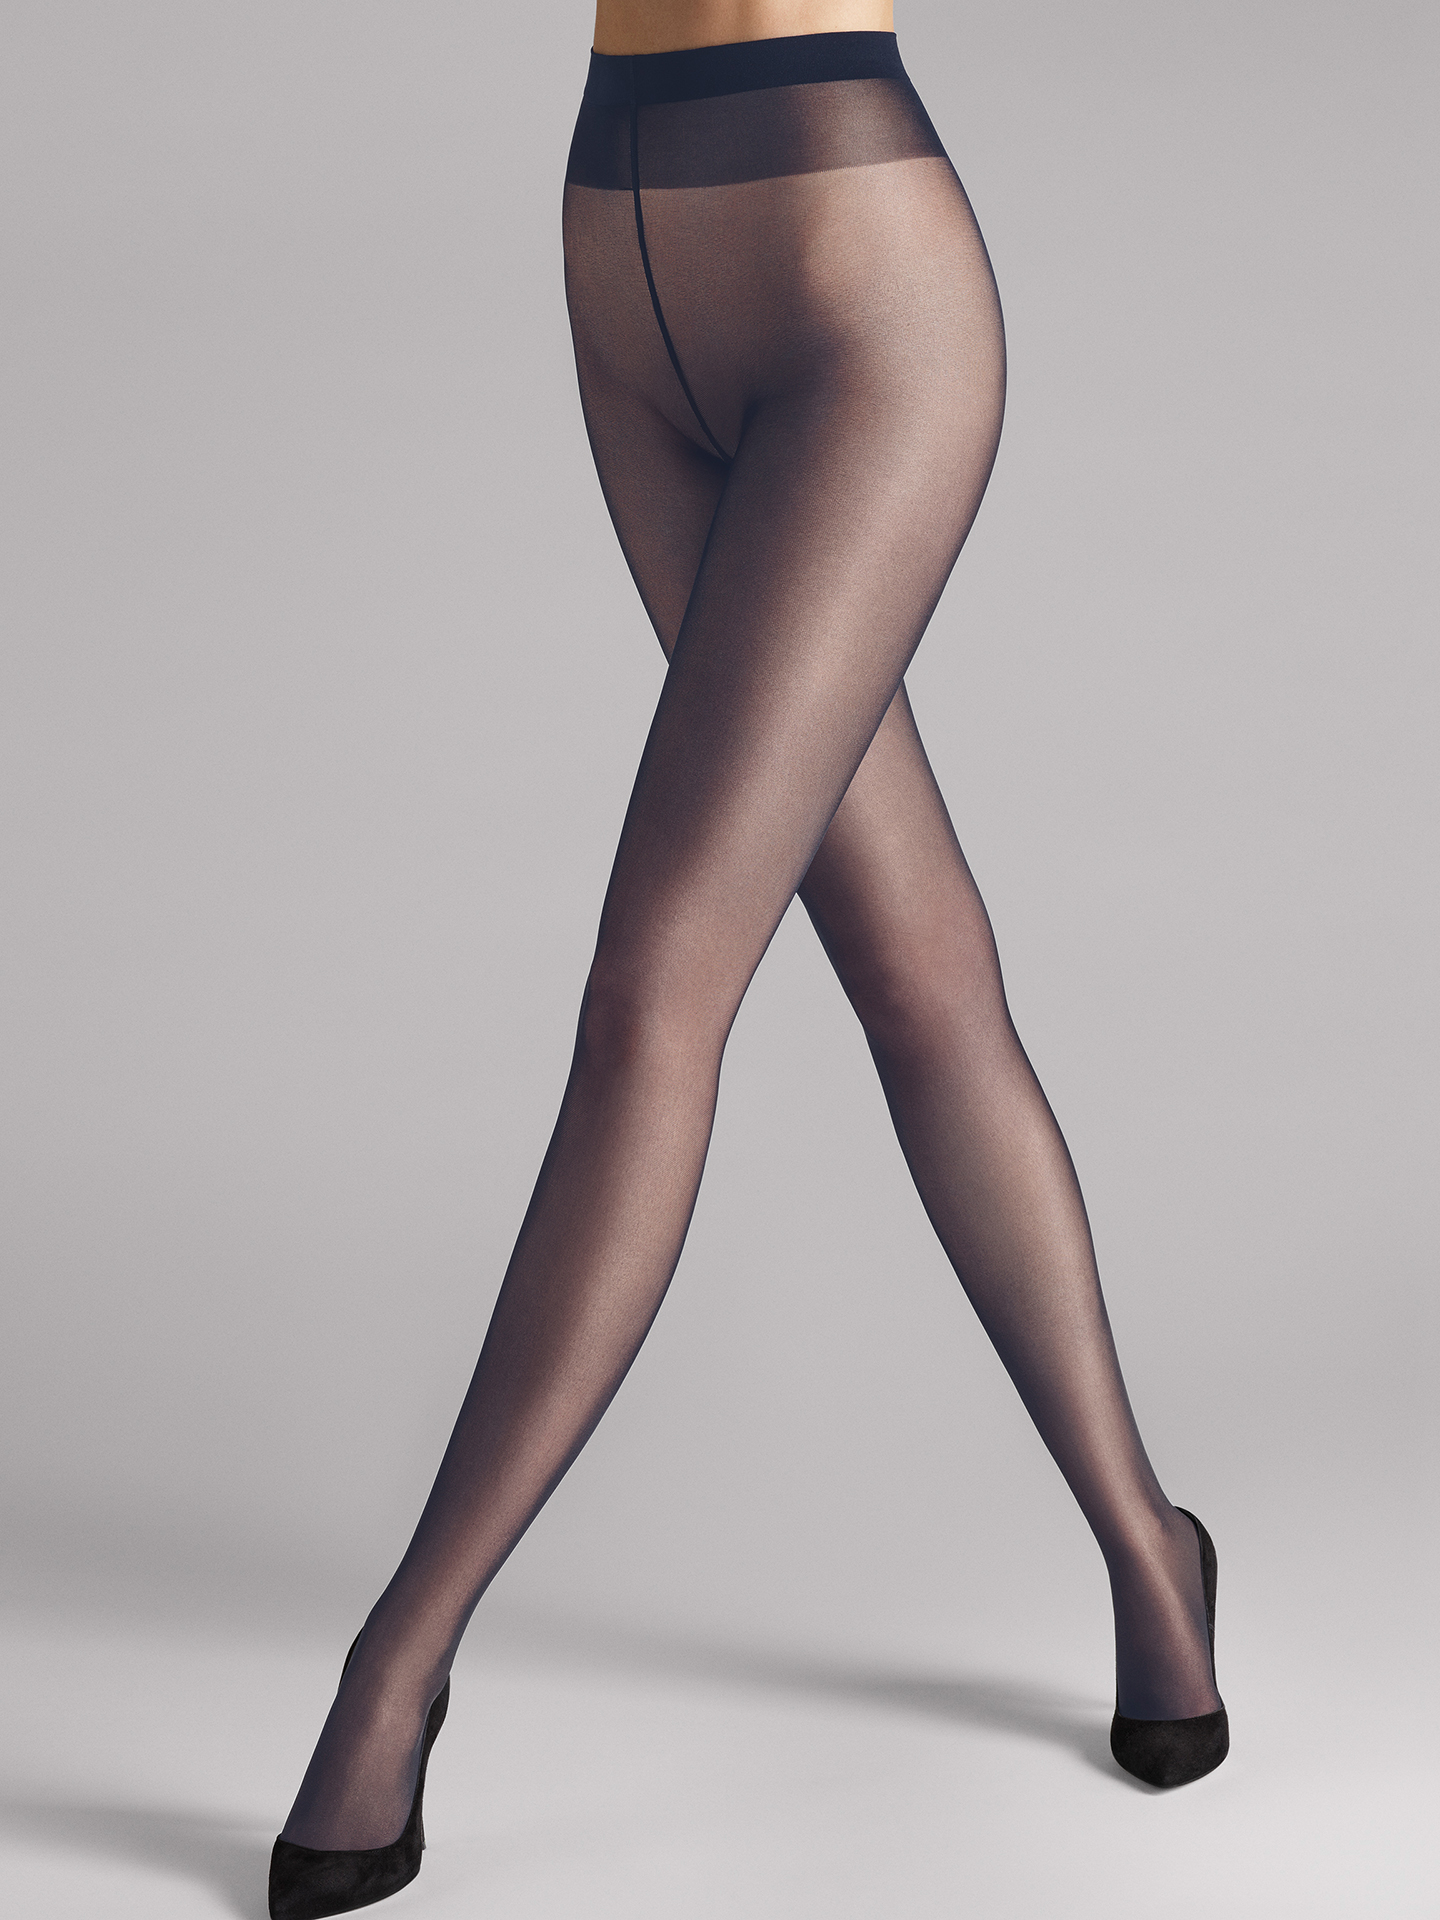 Wolford Apparel & Accessories > Clothing > Collant Perfectly 30 - 5280 - XL